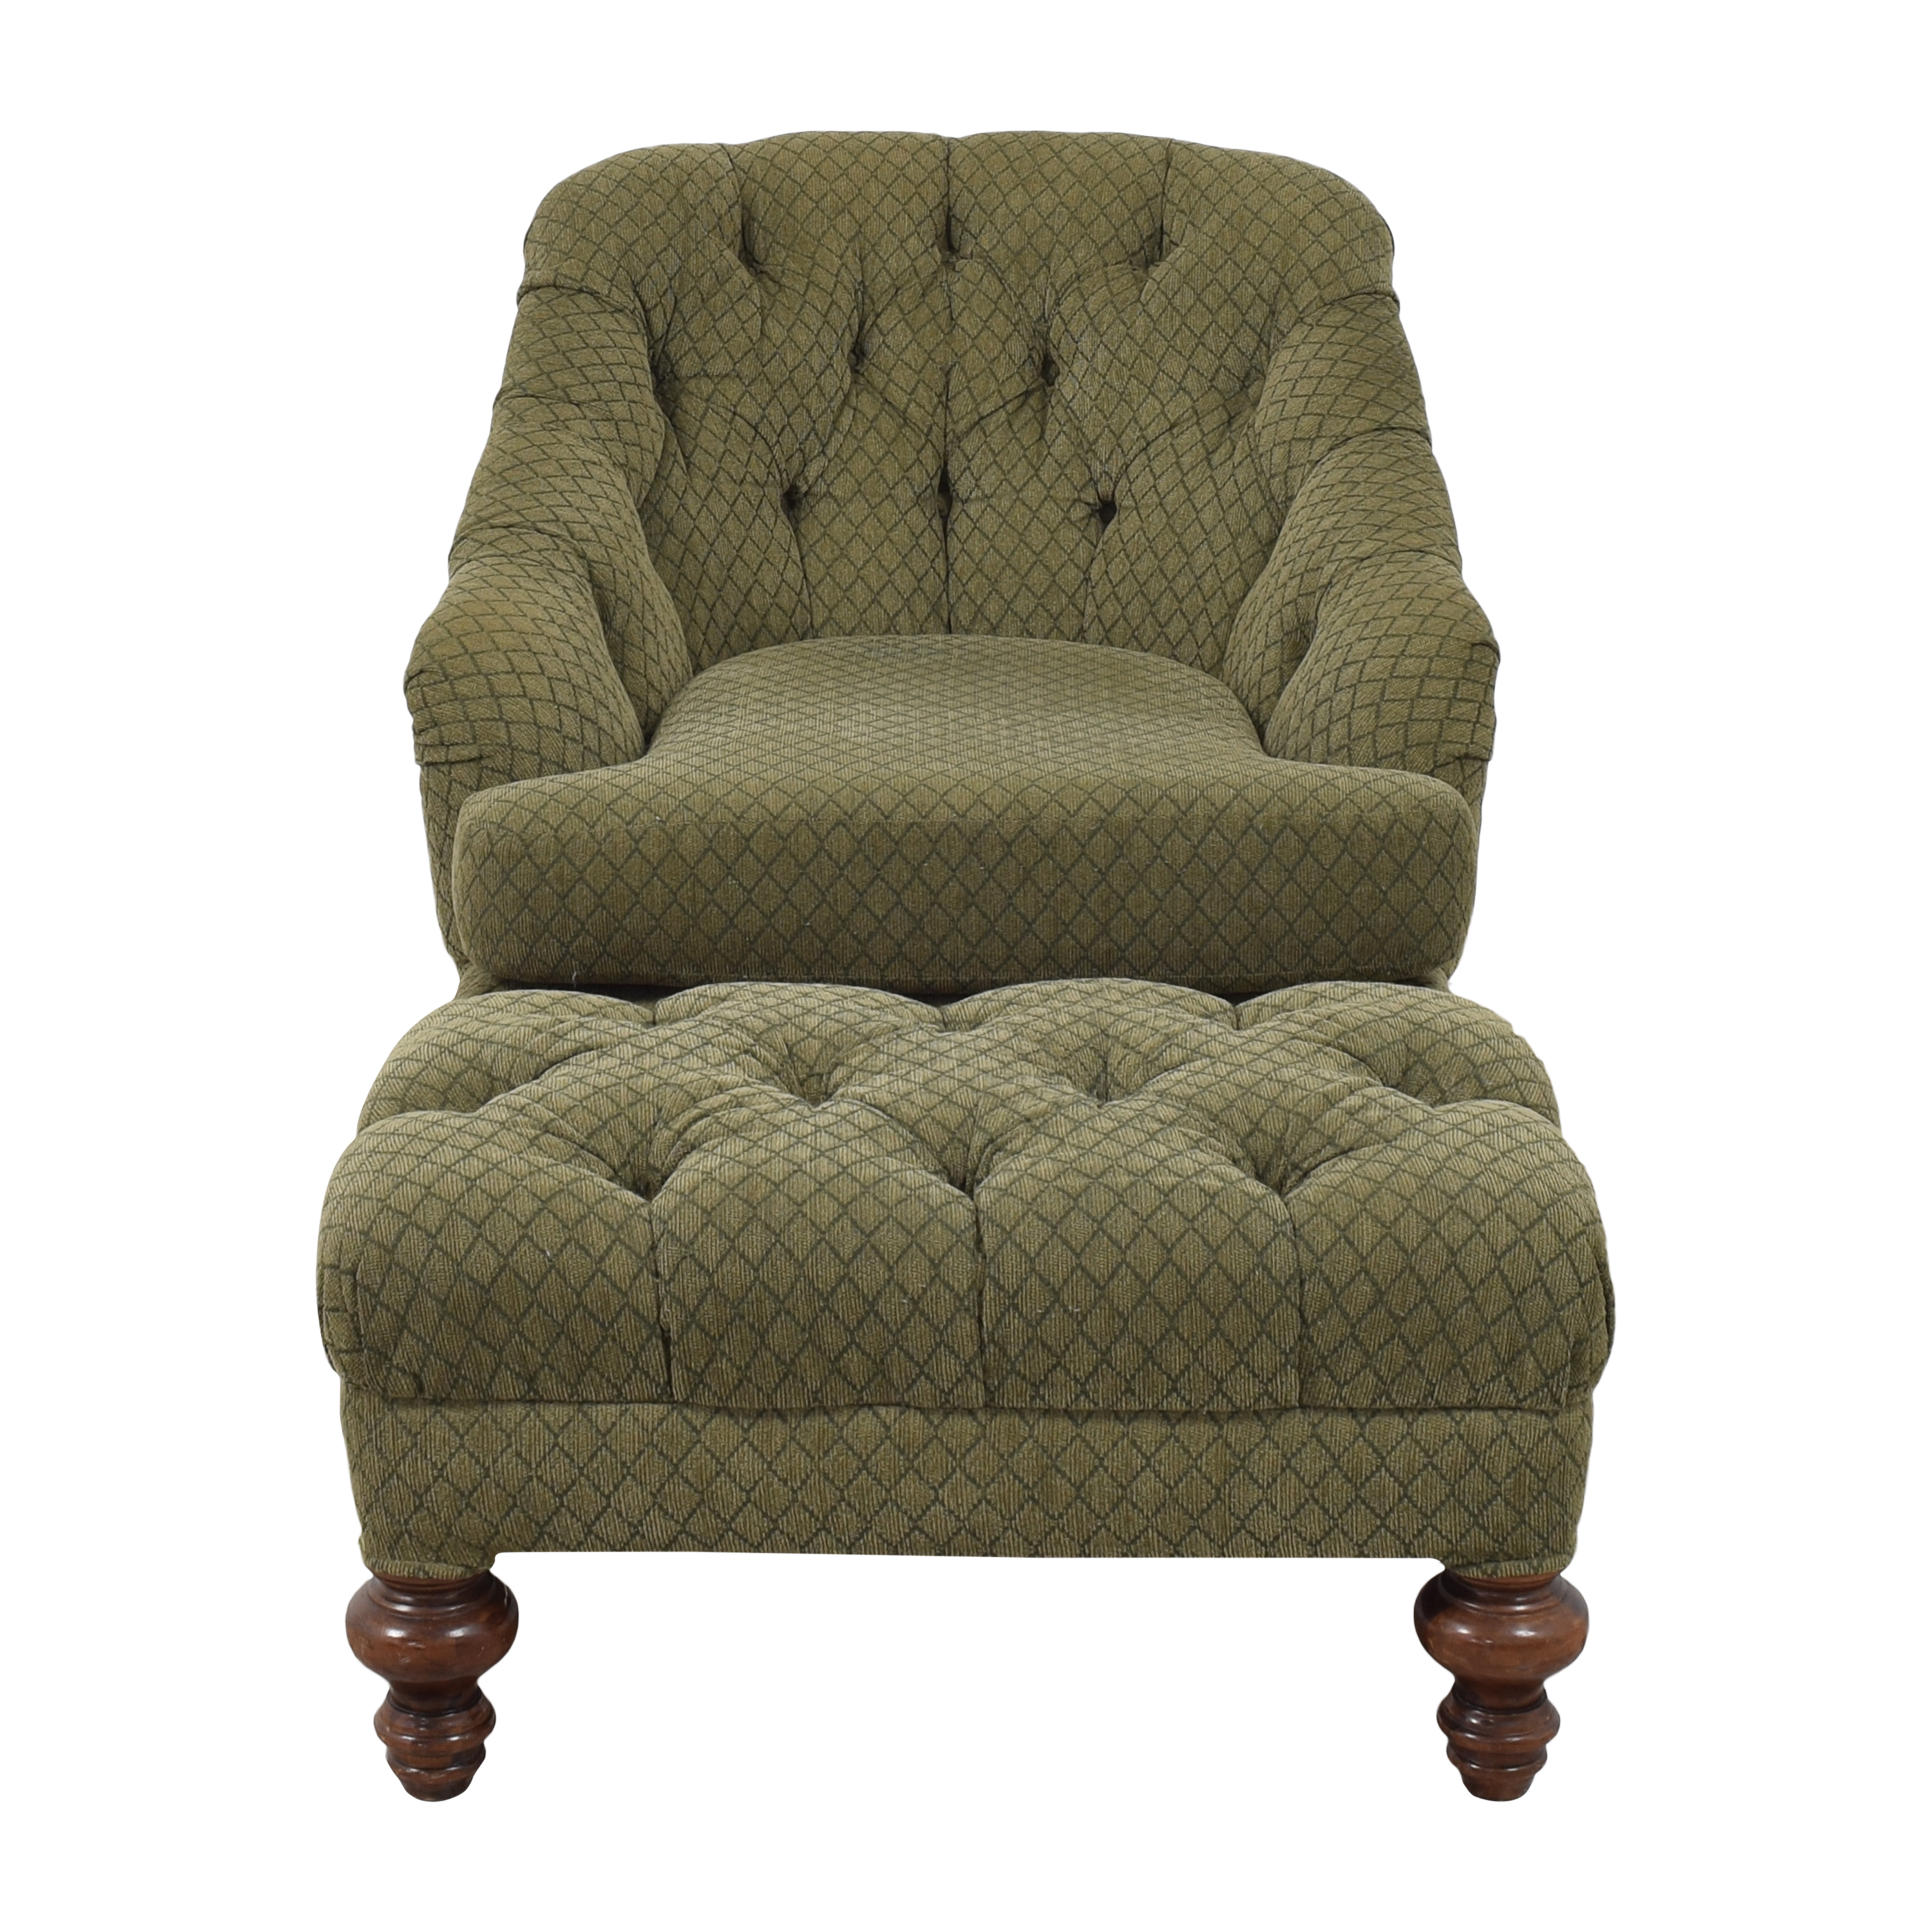 D R Kincaid Chair D R Kincaid Chair Tufted Chair and Ottoman discount